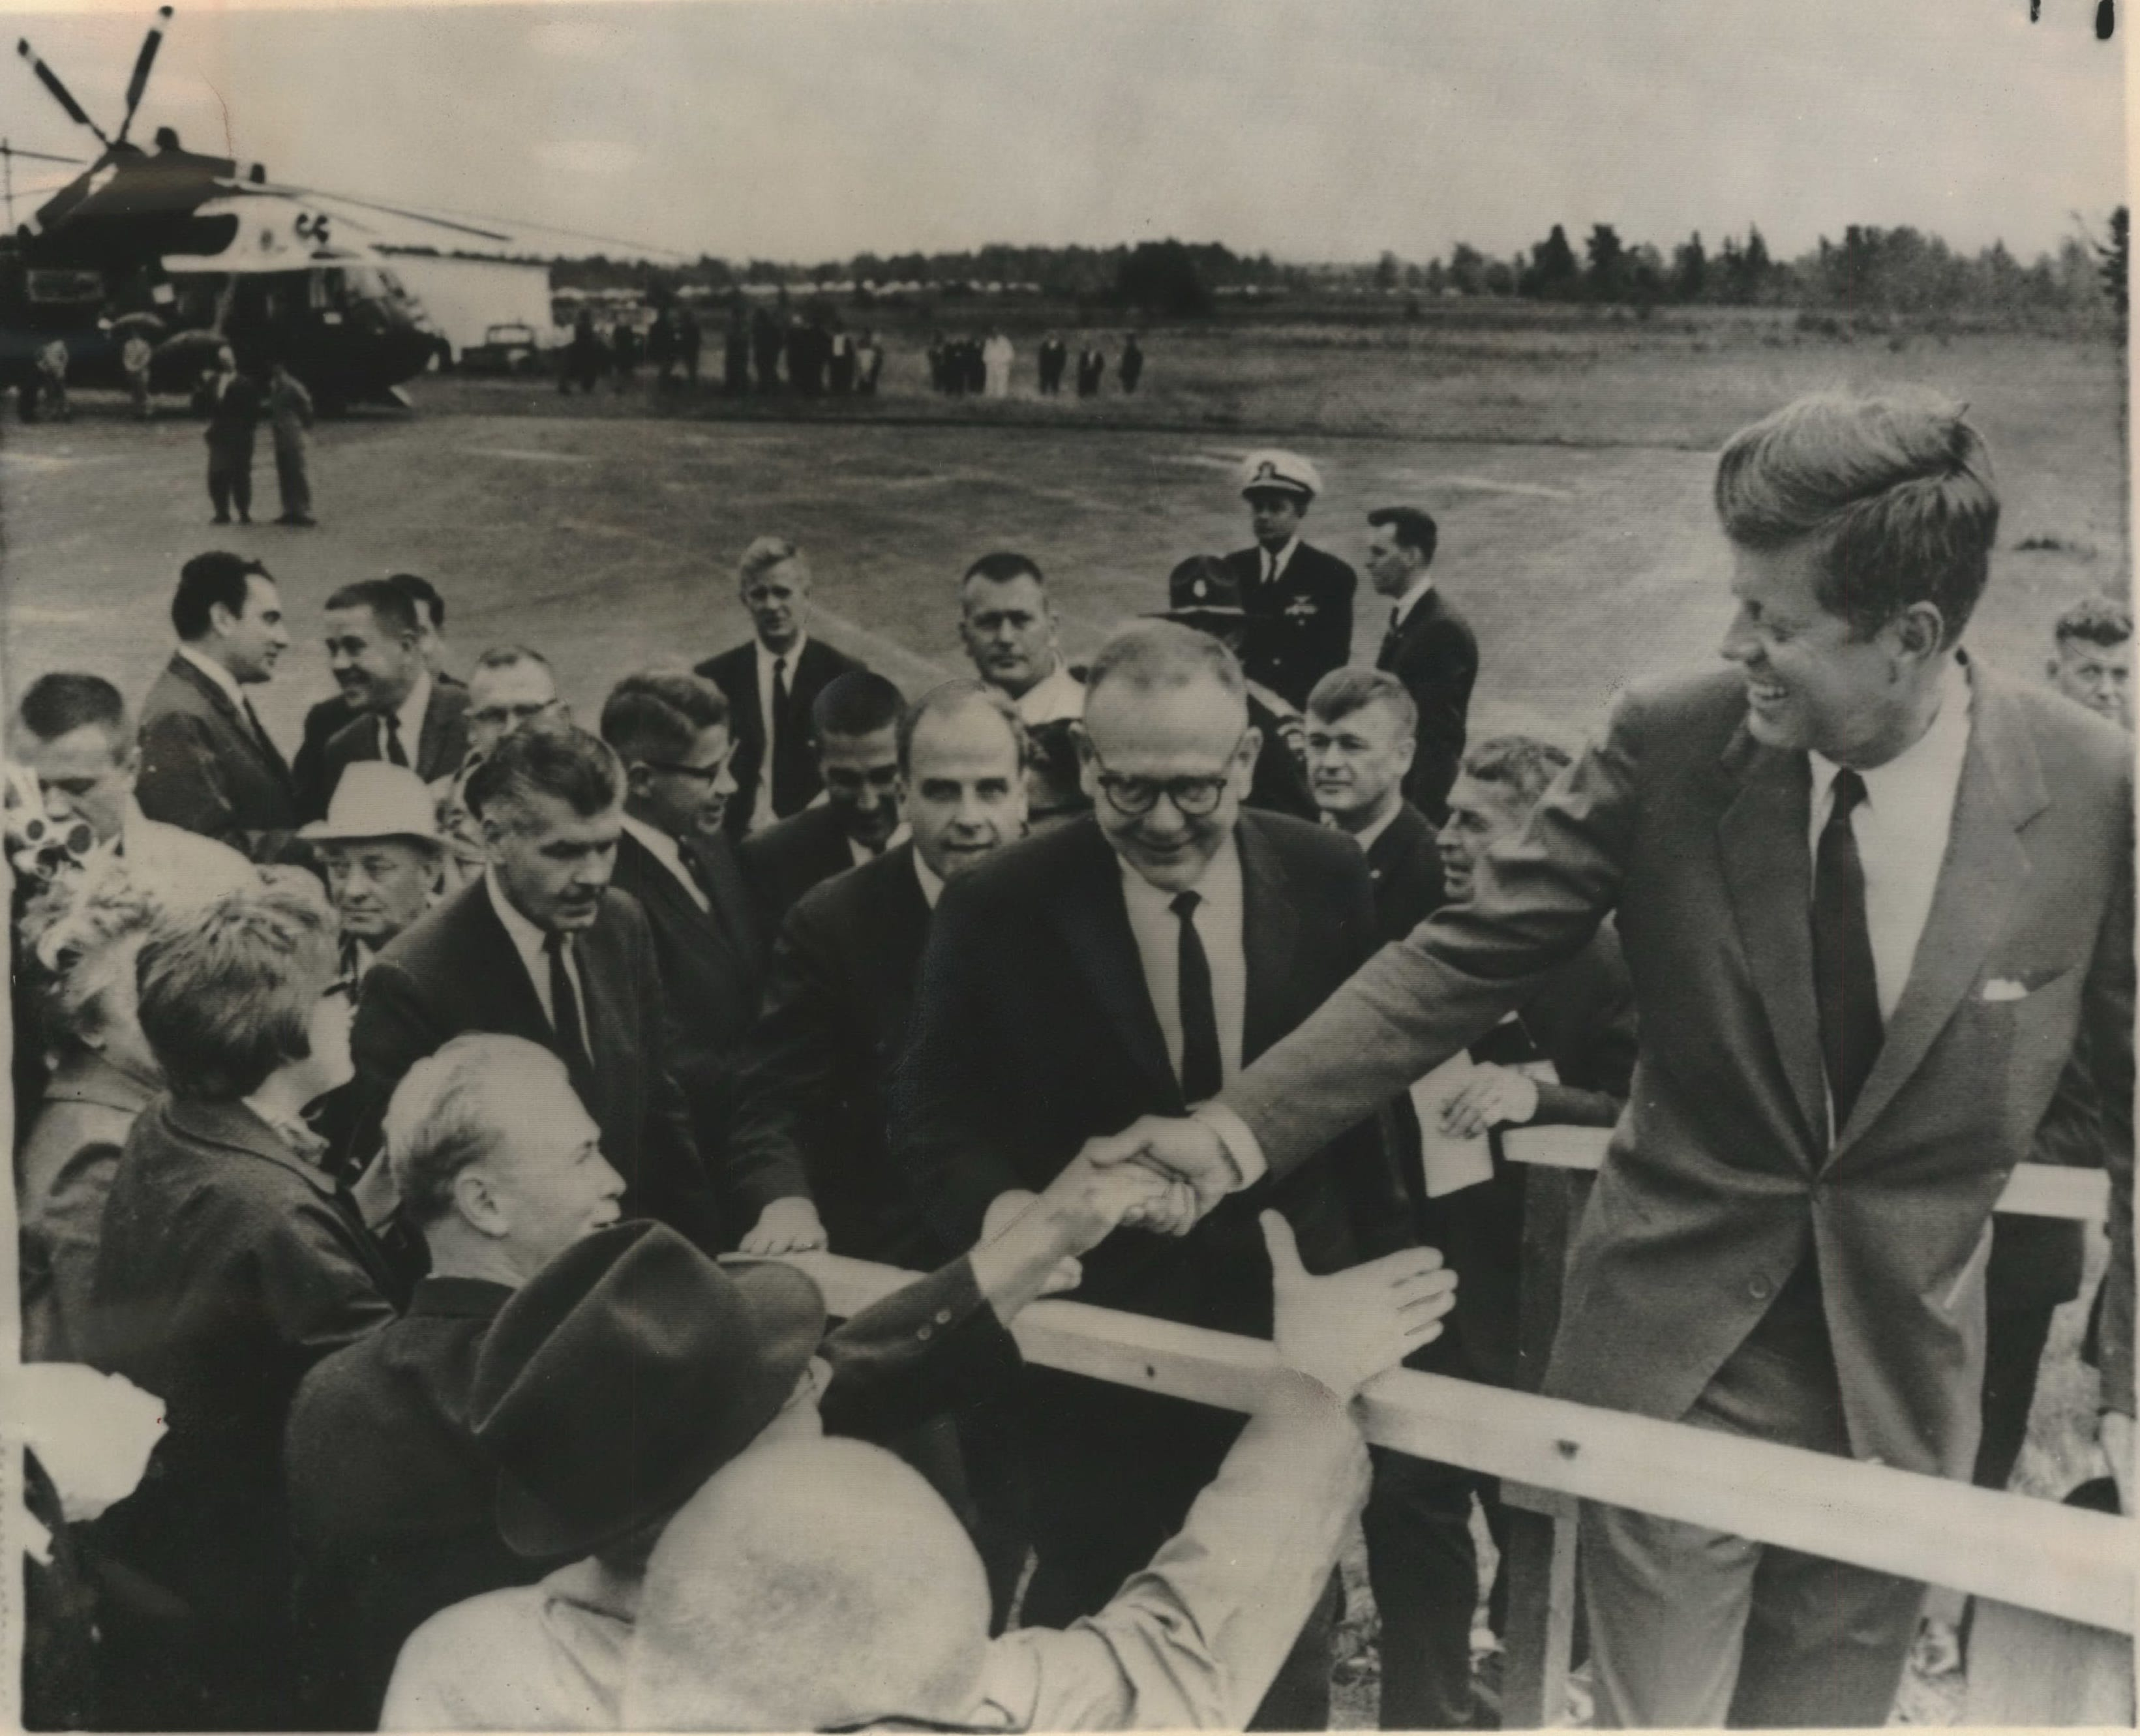 President John F. Kennedy shook hands with people in the crowd on Sept. 24, 1963 as he mounted the stairs to the speakers' platform at the Ashland airport after a helicopter tour over the Apostle Islands. Following him were Governor Reynolds, Senator Nelson, Interior Secretary Udall and Agriculture Secretary Freeman. The president spoke briefly before going back to Duluth, Minn.